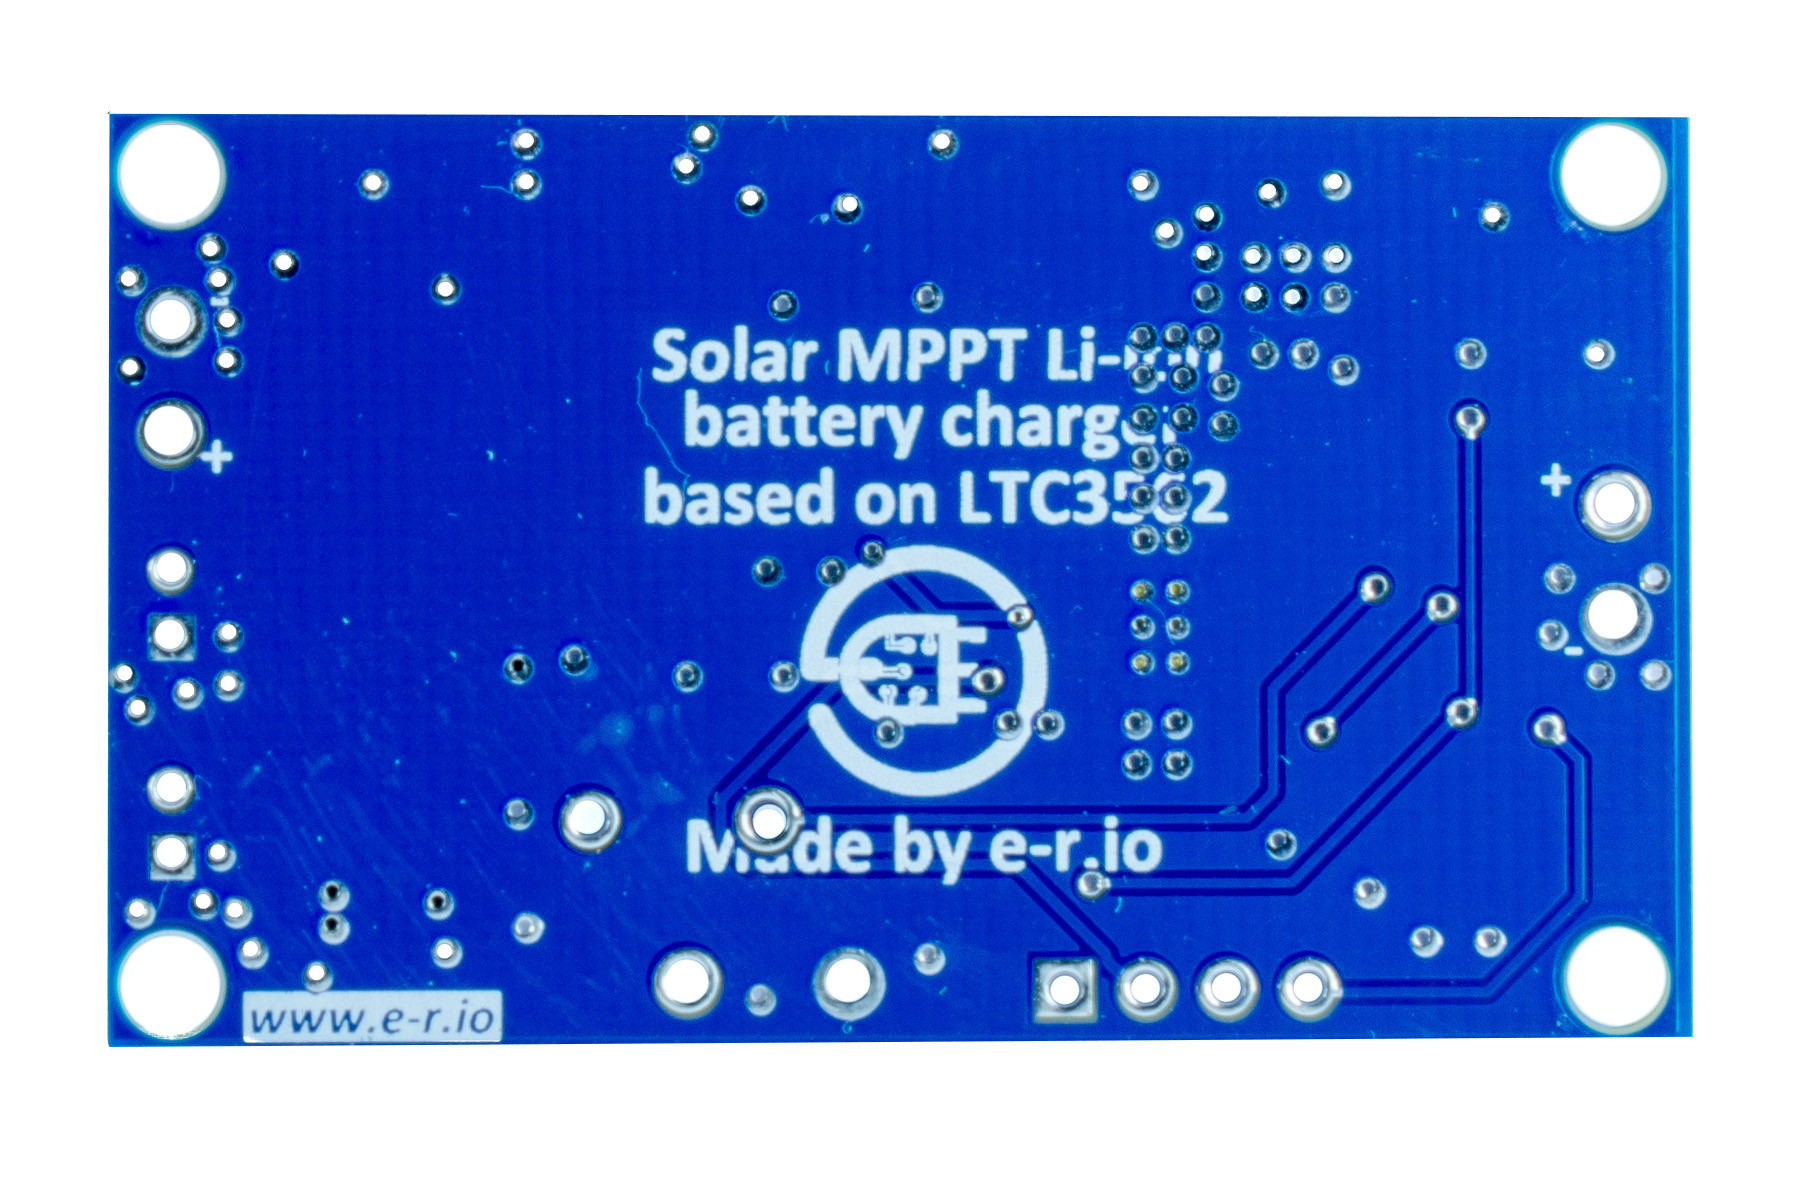 [RETIRED] Solar MPPT li-ion battery charger(made by e-radionica)